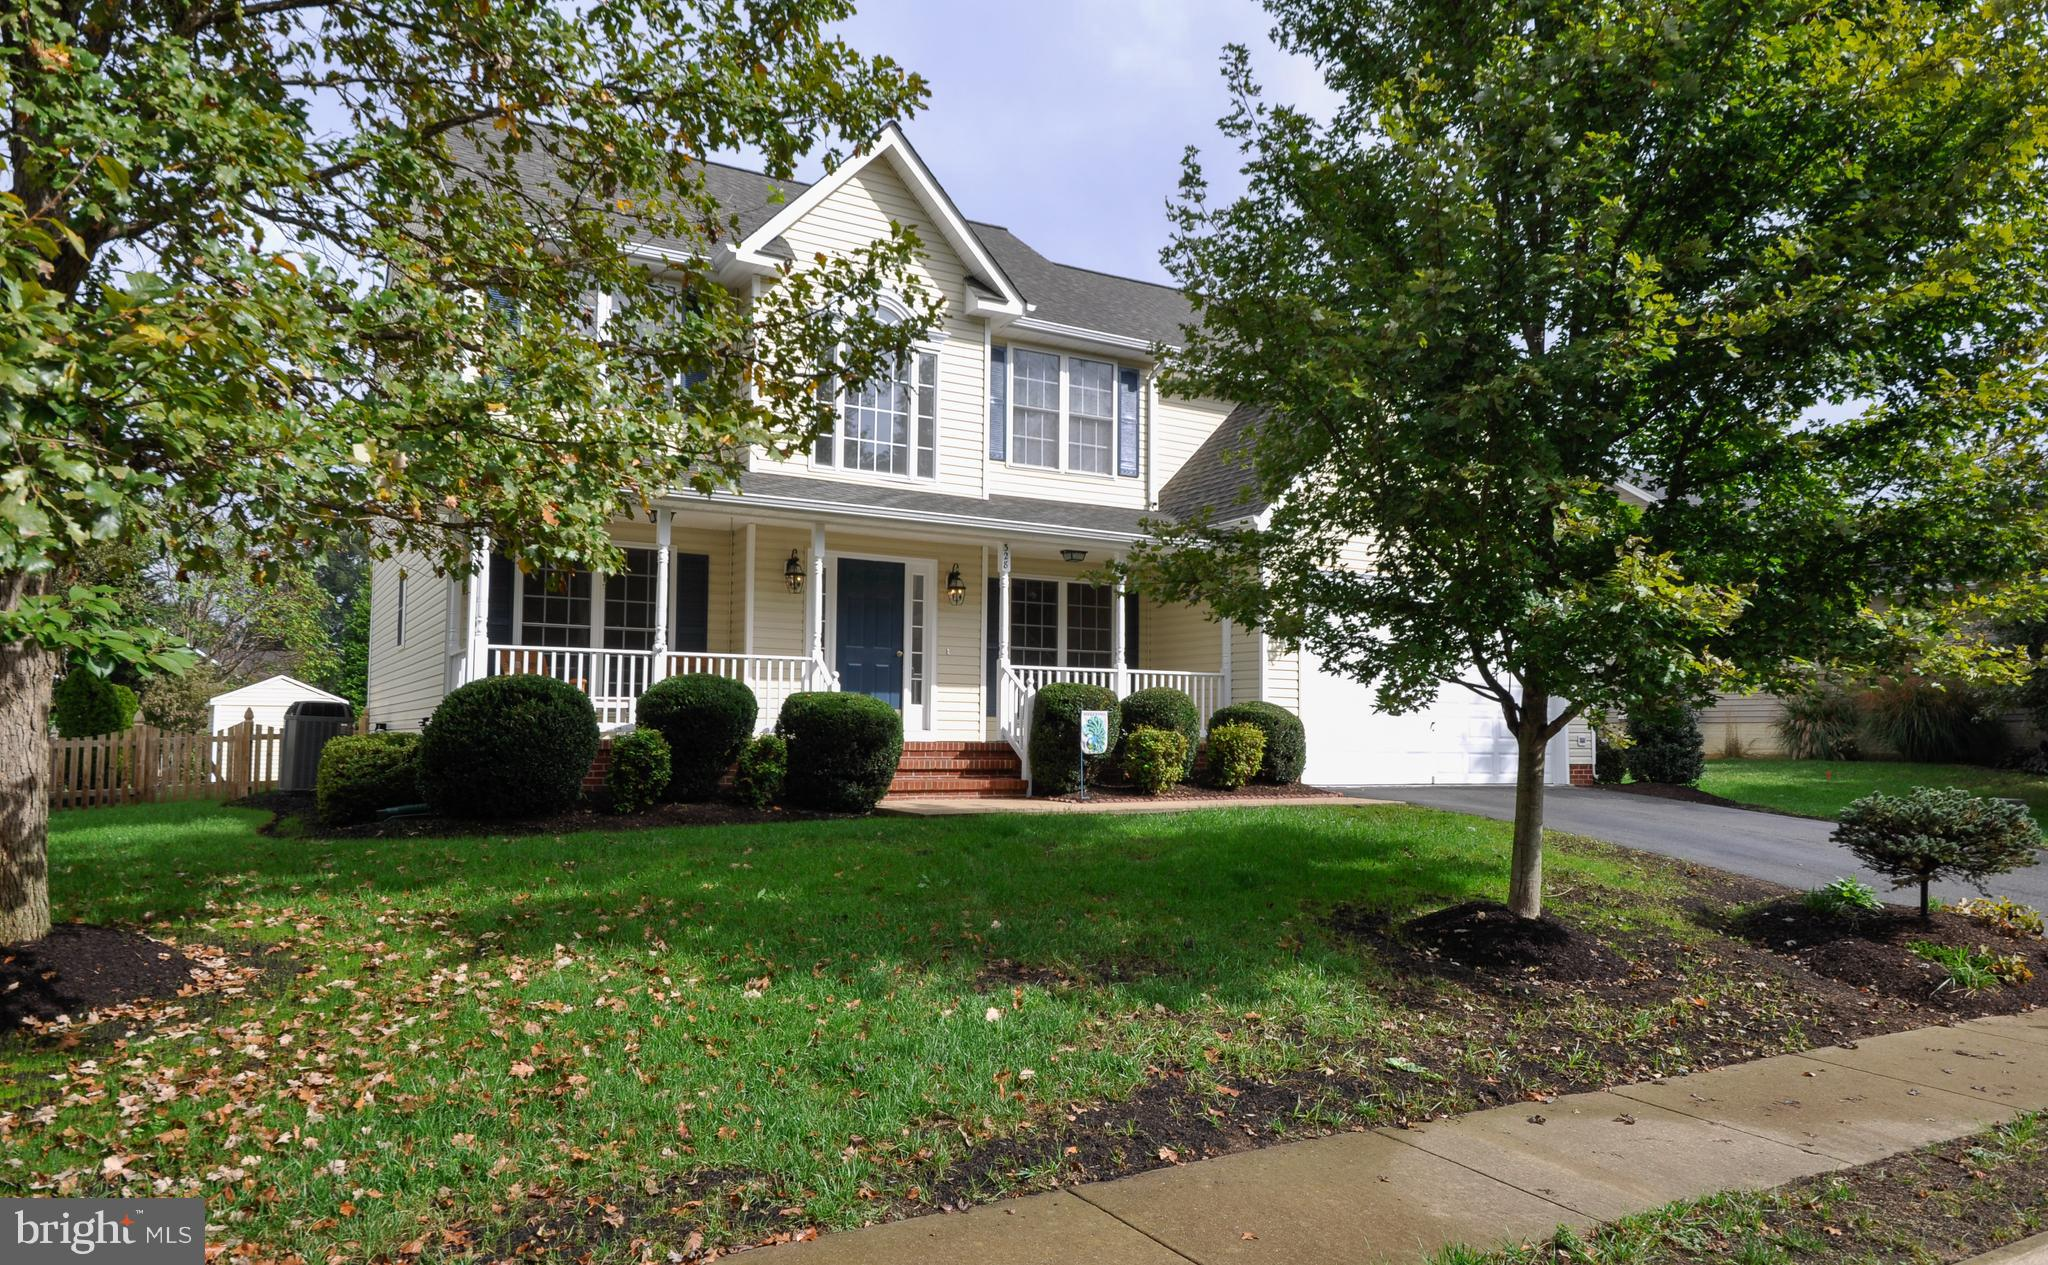 AMAZING ONE OWNER HOME WITH MANY UPGRADED FEATURES * REFIN. HARDWOOD FLRS *MAIN LEVEL OFFICE/DEN * F